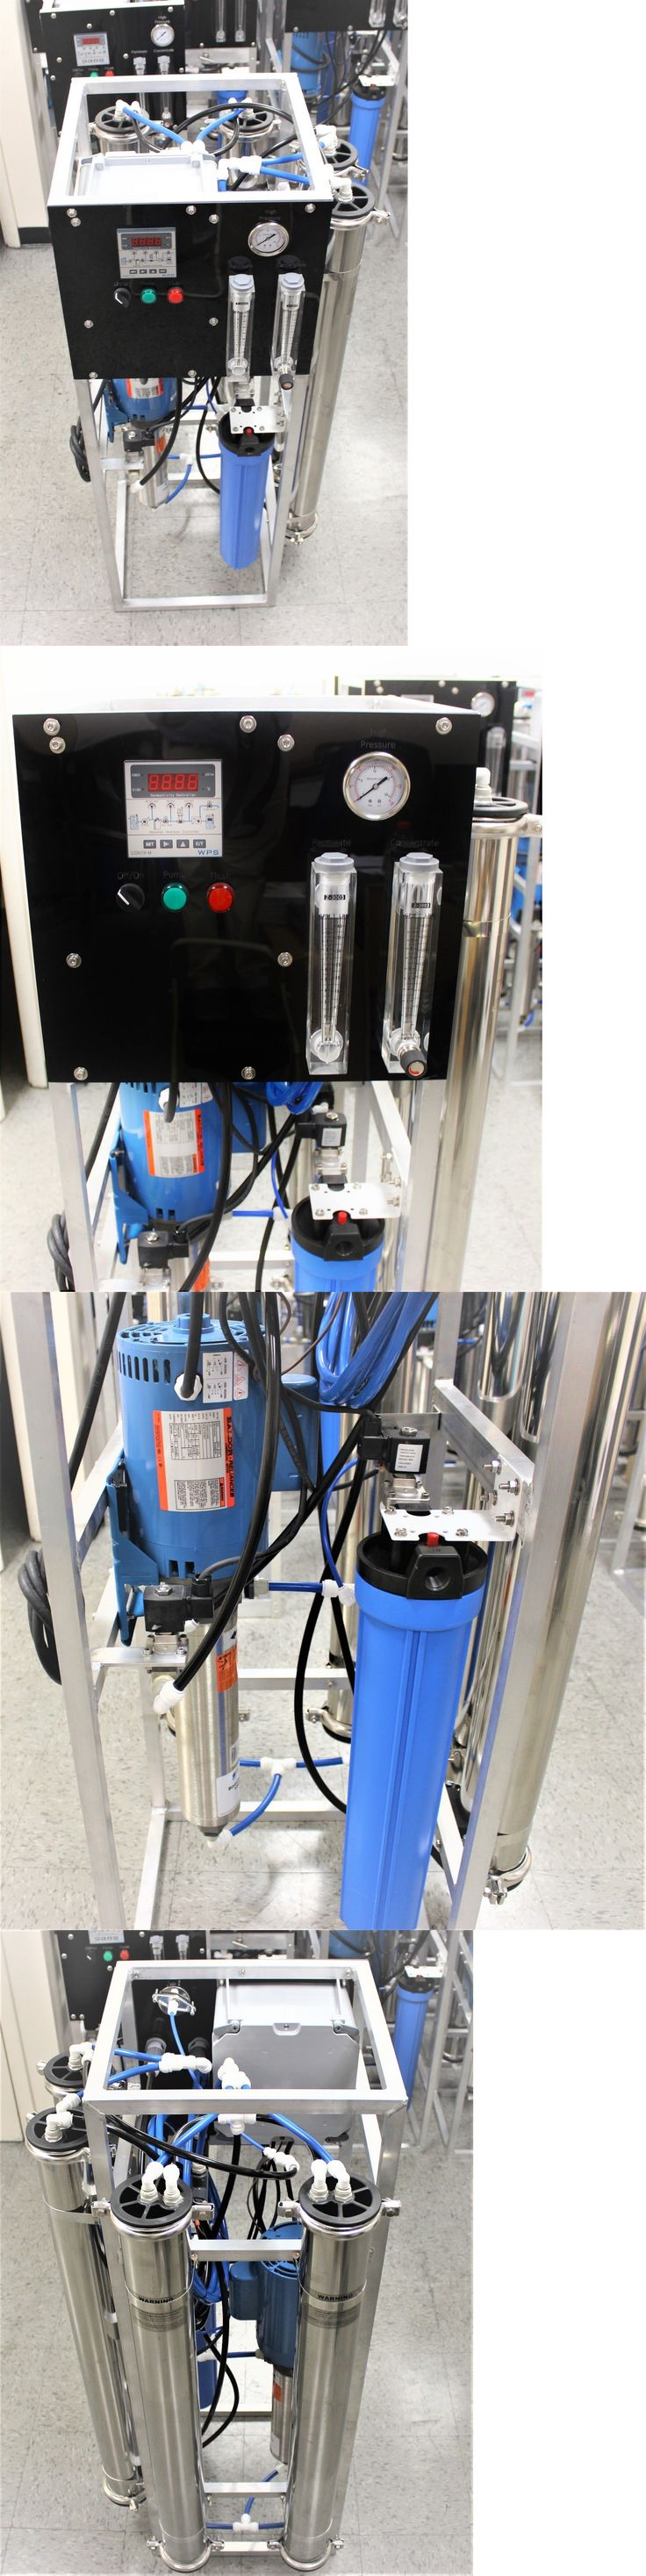 Cleaning and Maintenance 148983: Reverse Osmosis Water System Commercial-Industrial 8000 Gpd -> BUY IT NOW ONLY: $4500 on eBay!